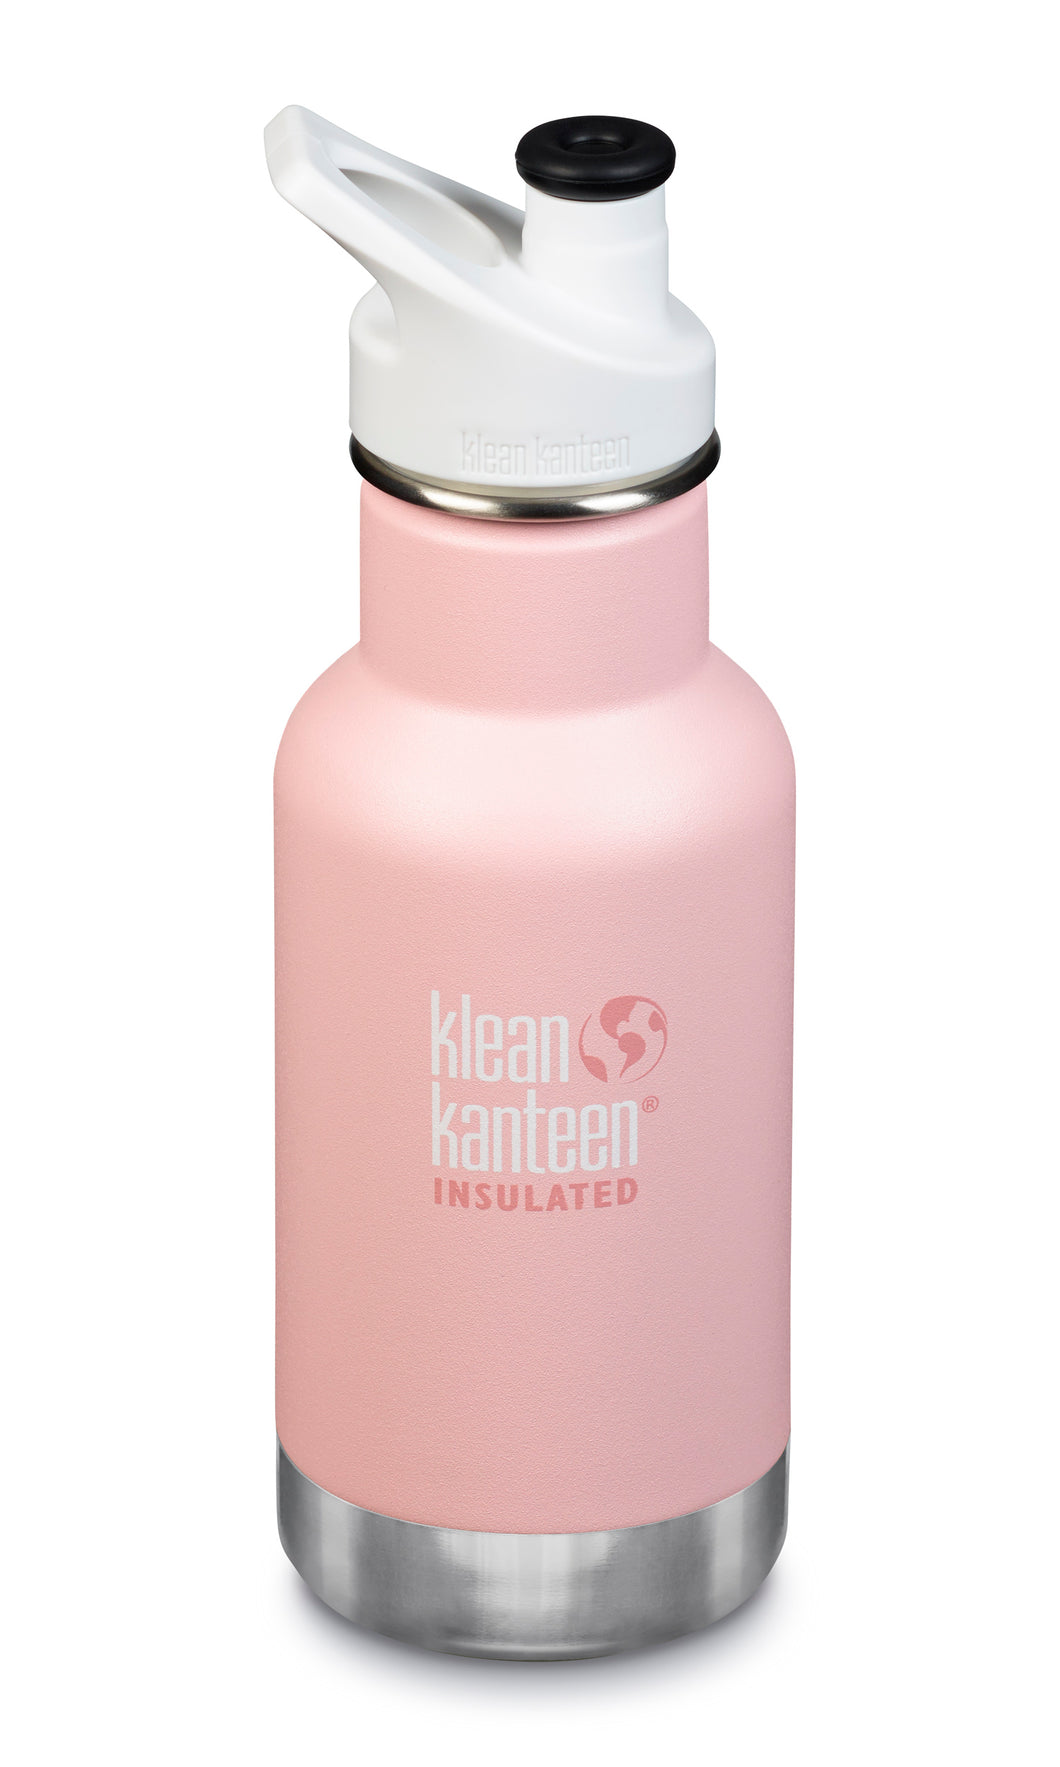 New Klean Kanteen Water Bottle Insulated 12 oz Stainless Steel